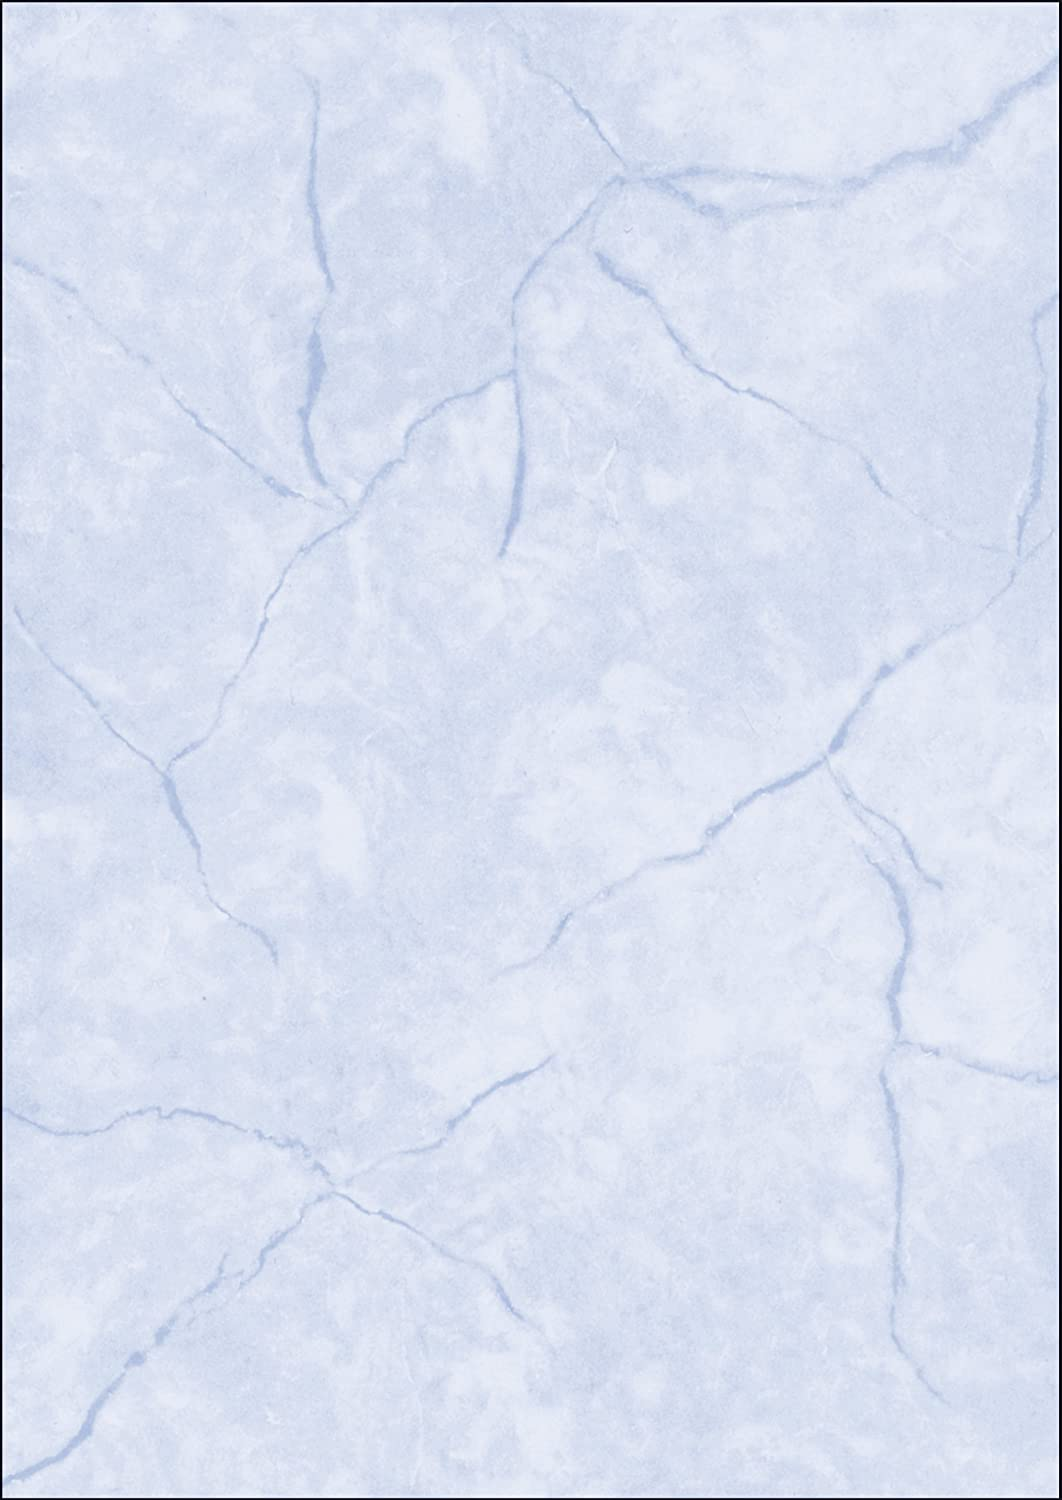 Sigel DP639 Easy-to-use Textured Papers Granite Blue Max 57% OFF 100 60.8 A4 She lbs